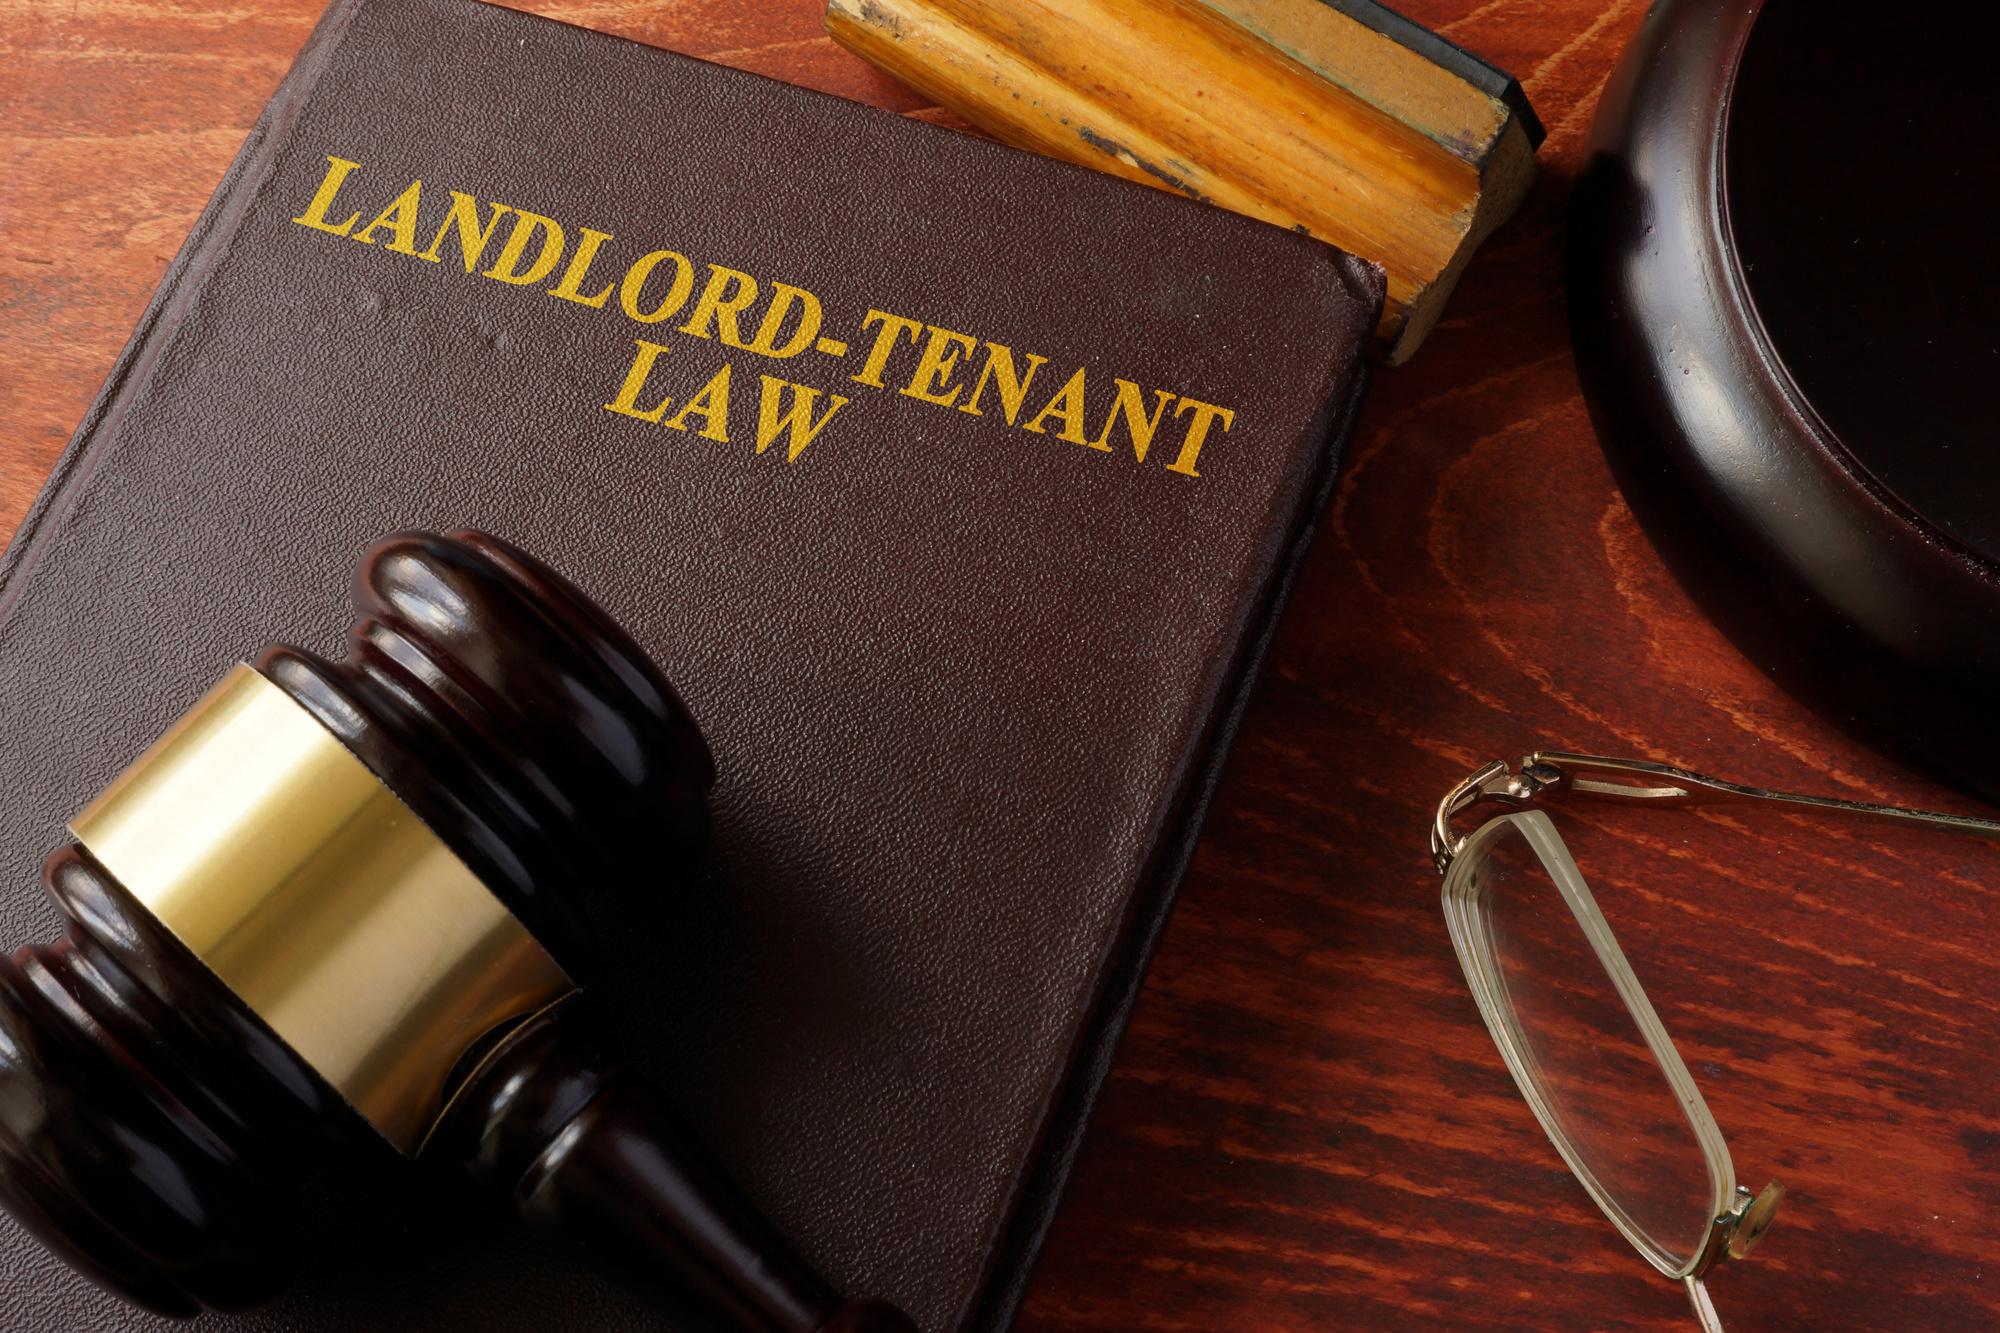 The Tenant and Landlord Handbook